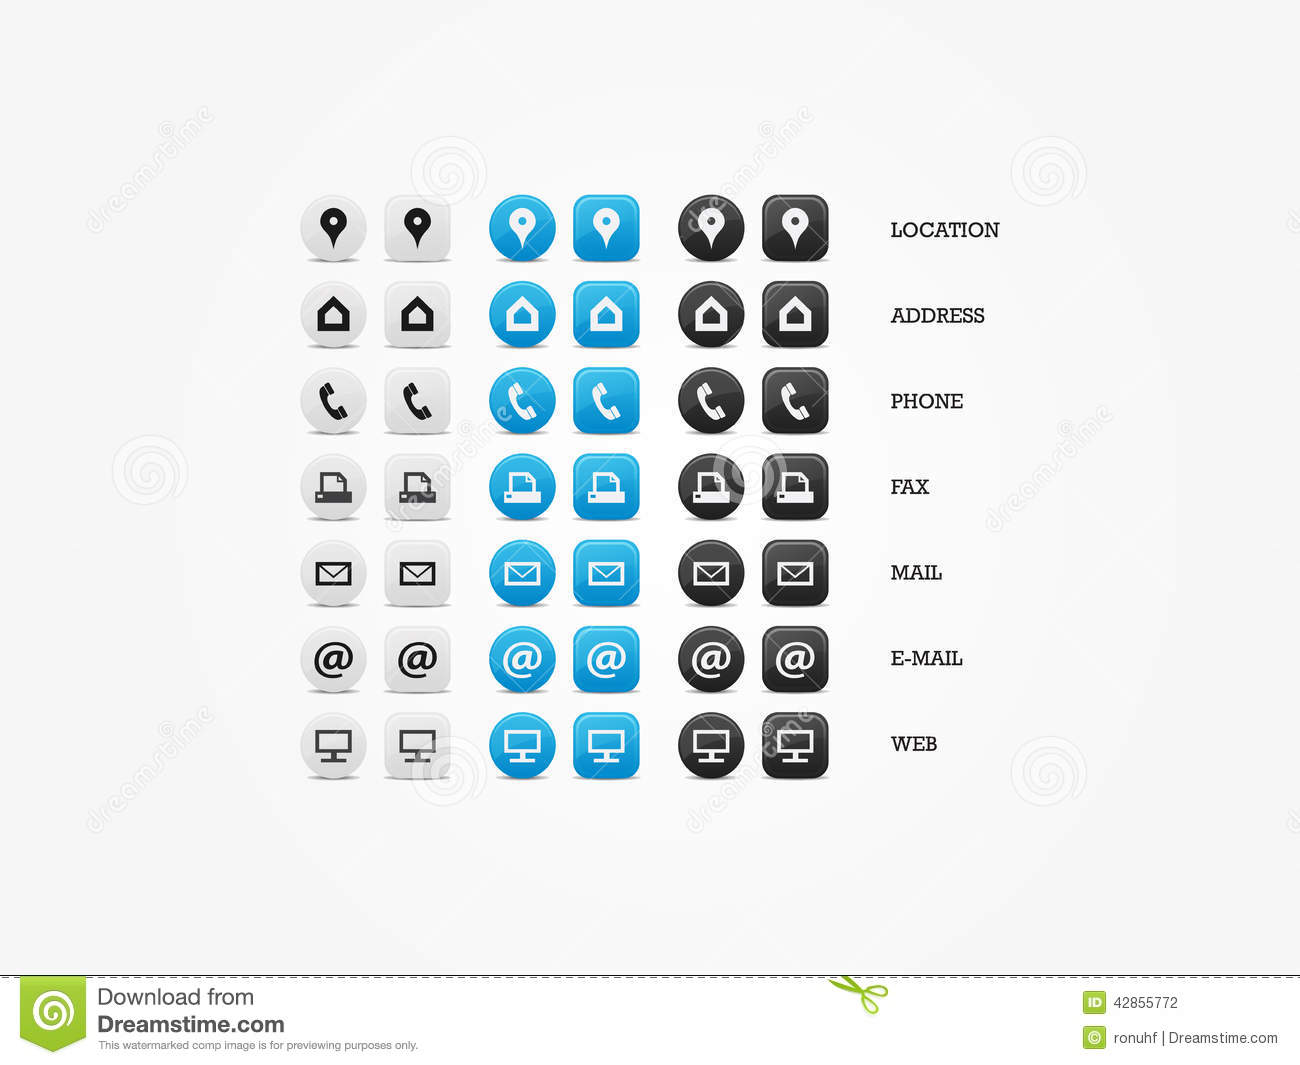 15 contact icons for business cards images free contact icons business card business card. Black Bedroom Furniture Sets. Home Design Ideas